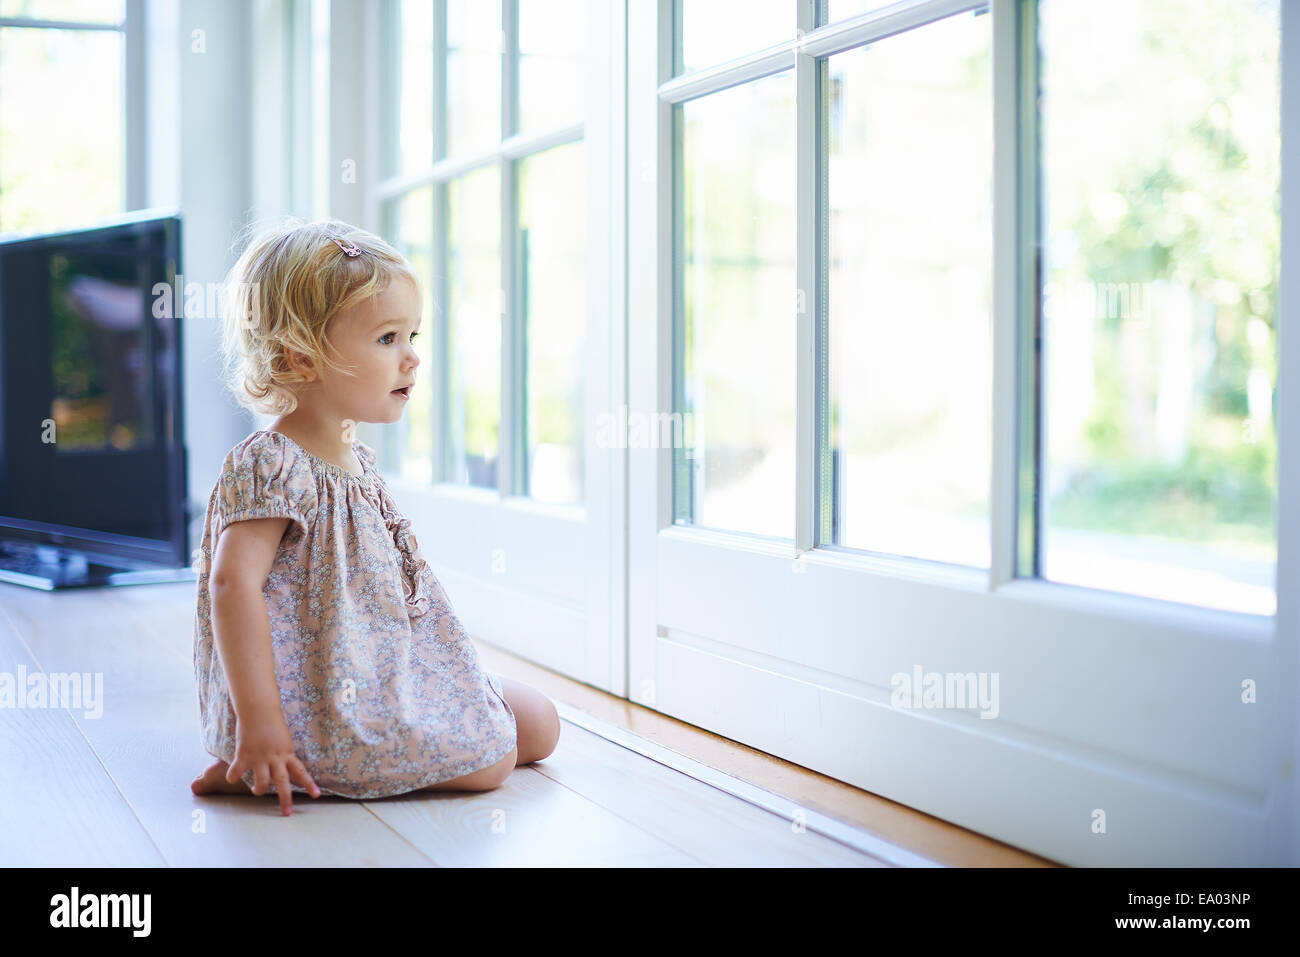 Portrait female toddler sitting on floor looking out of patio doors Stock Photo